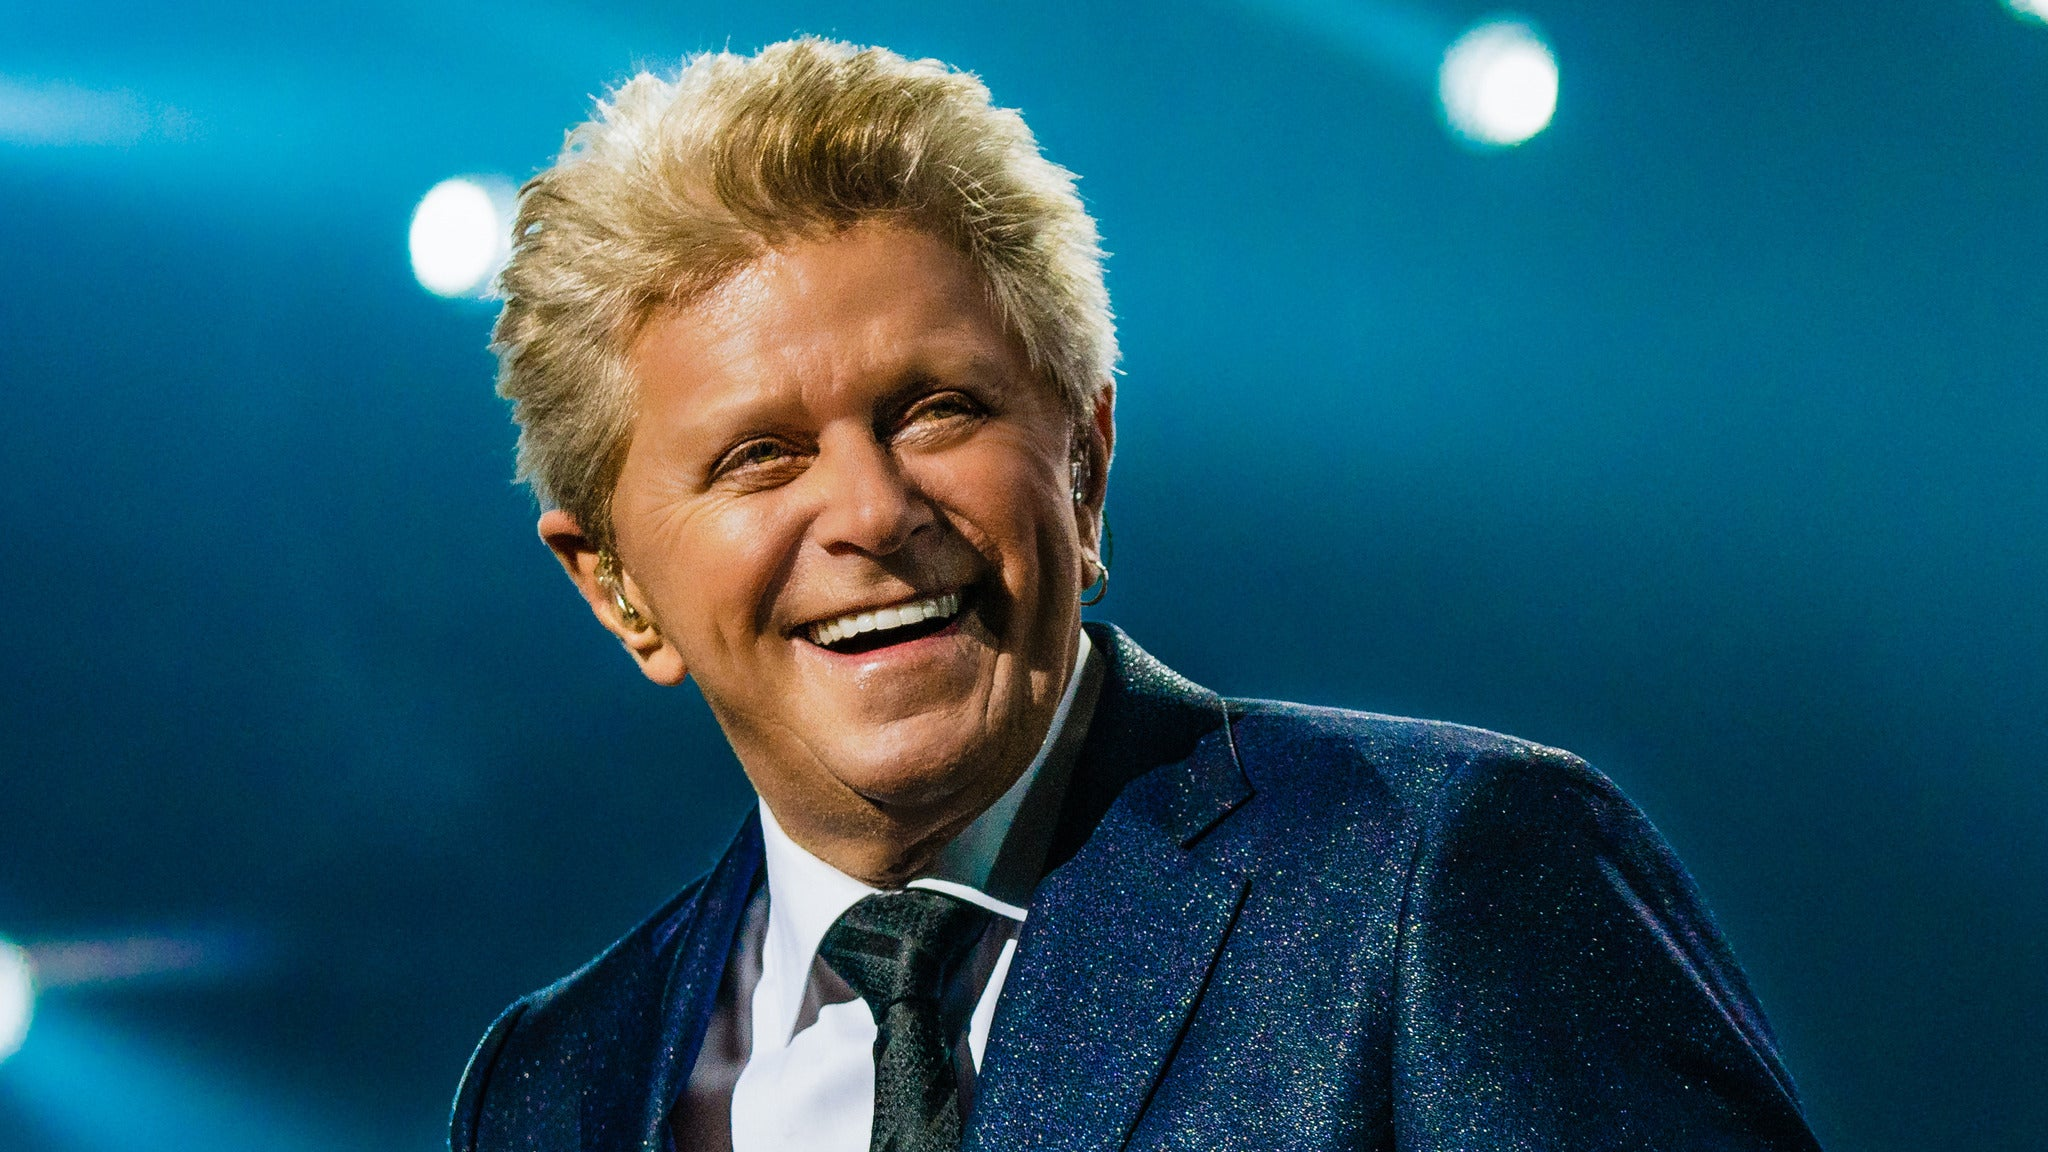 Peter Cetera at Beau Rivage Theatre at Beau Rivage Theatre